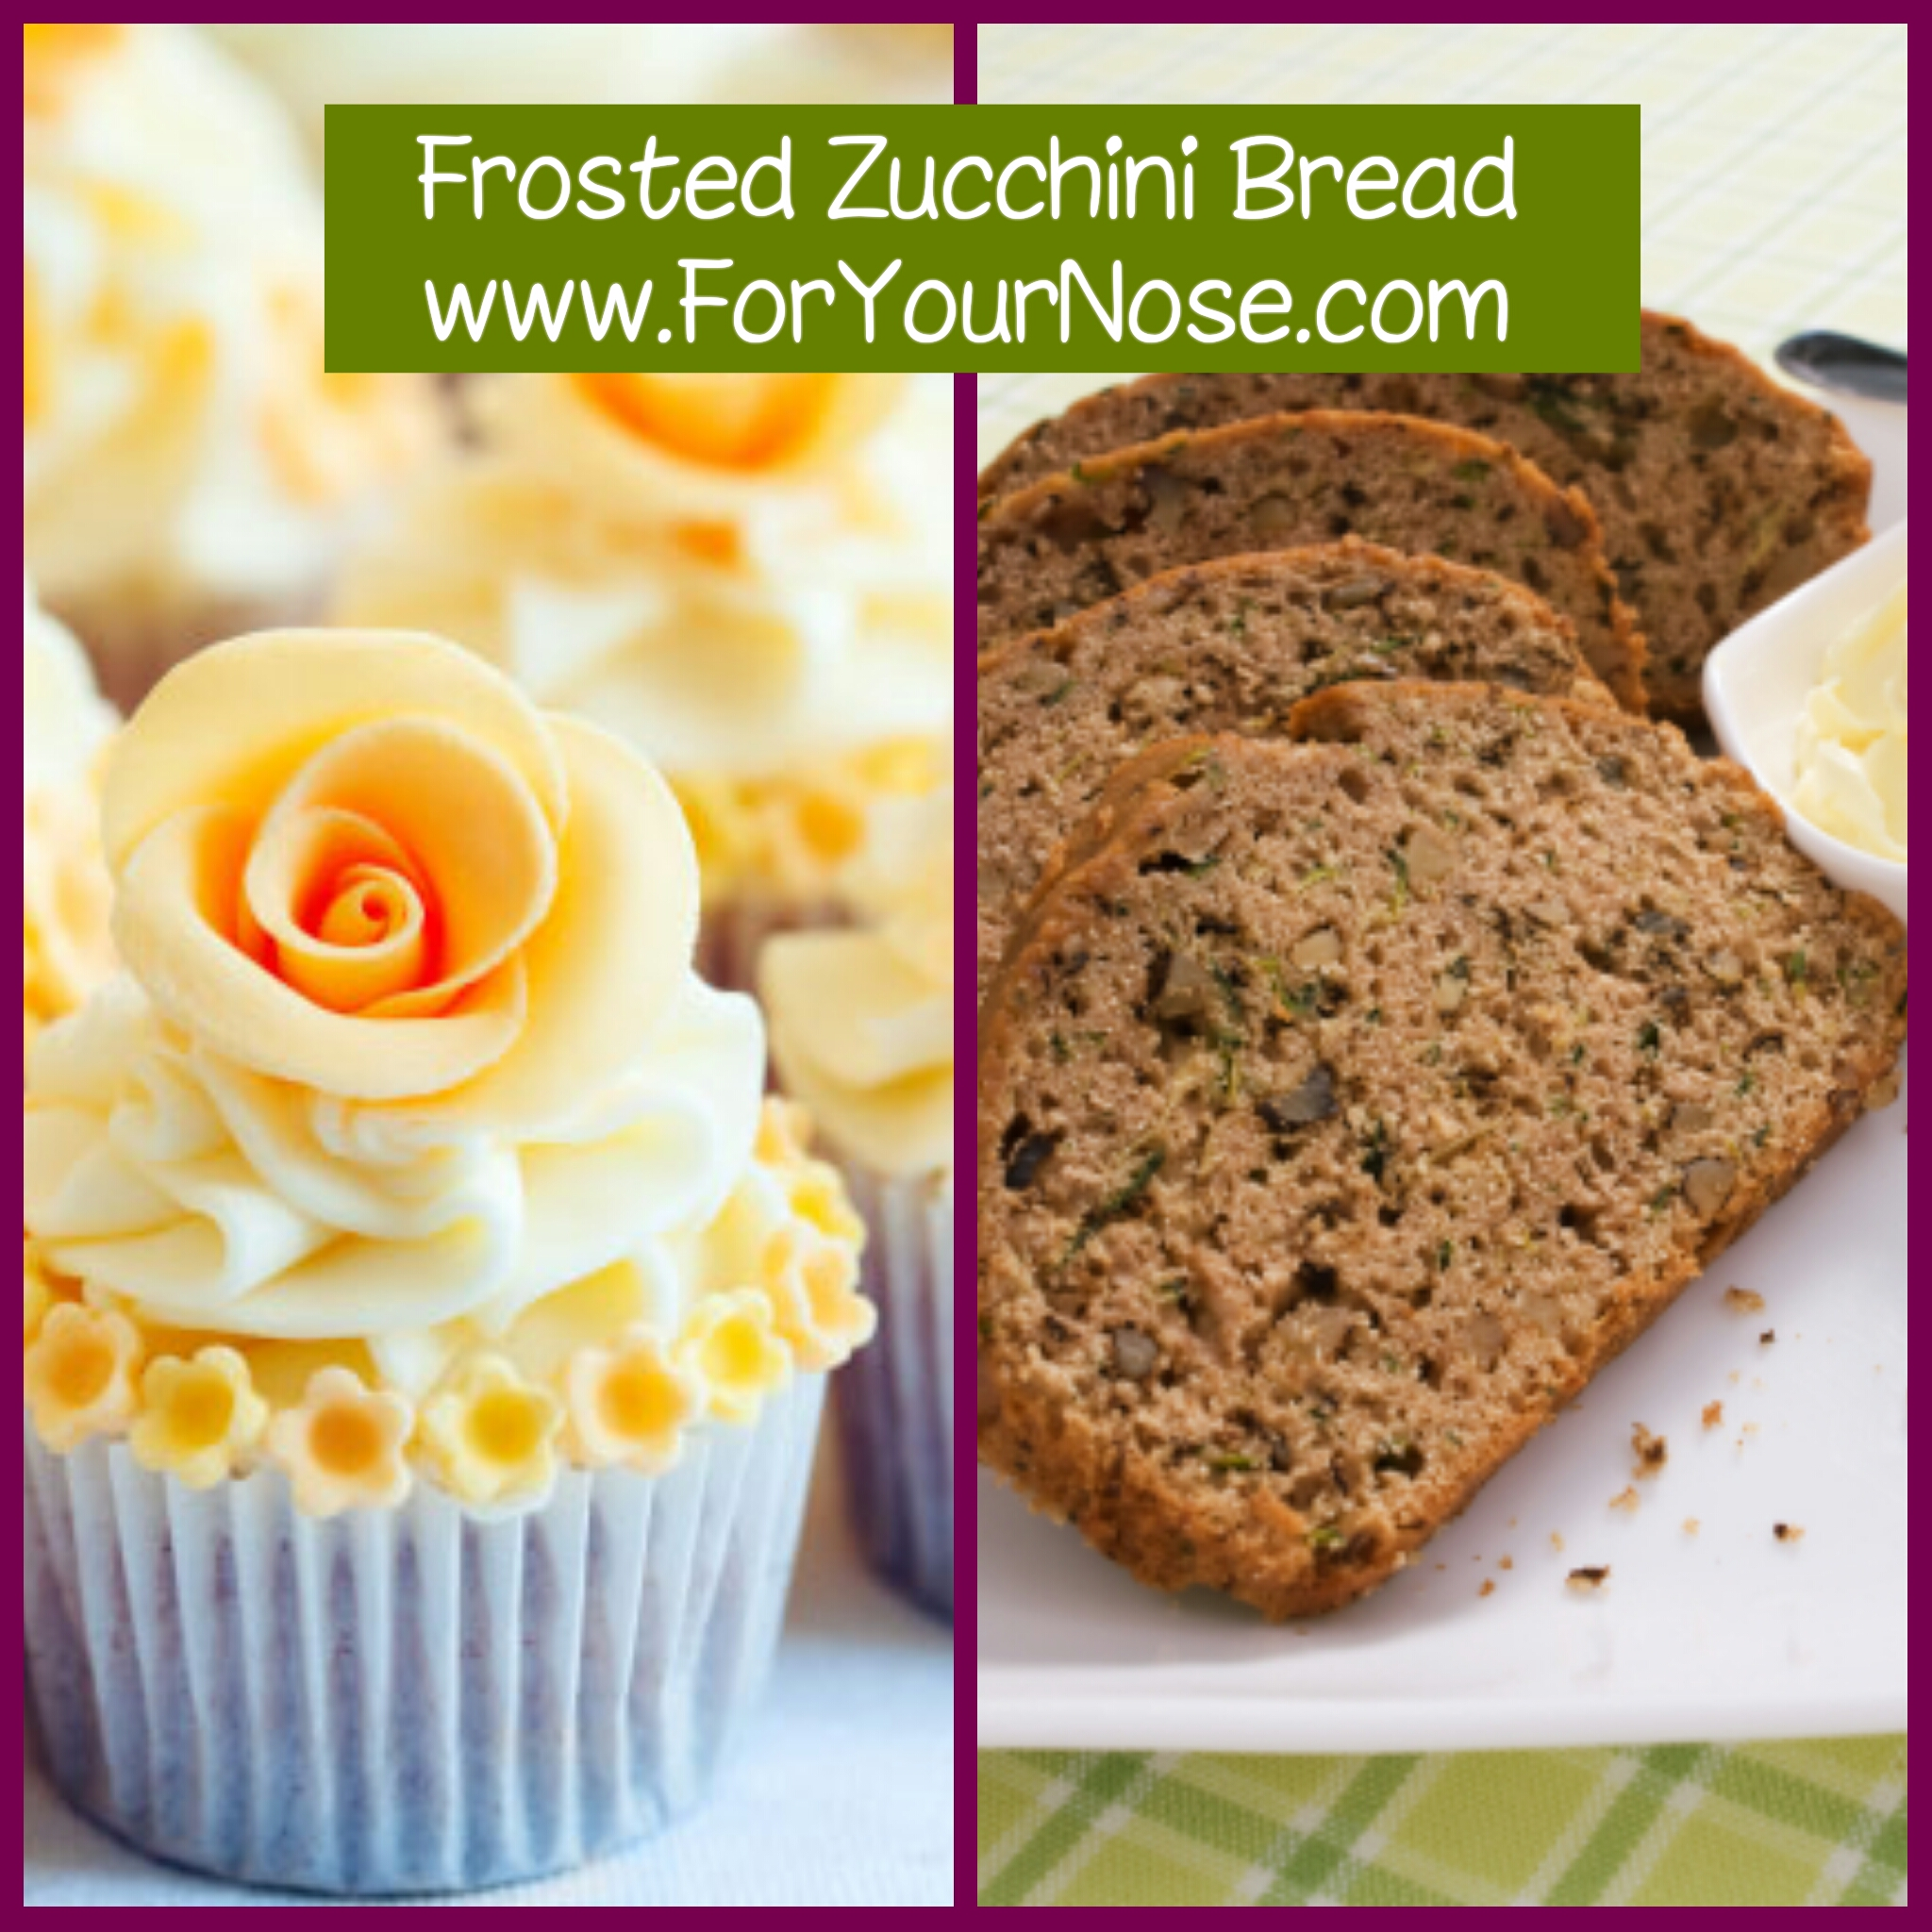 Frosted Zucchini Bread fragrance